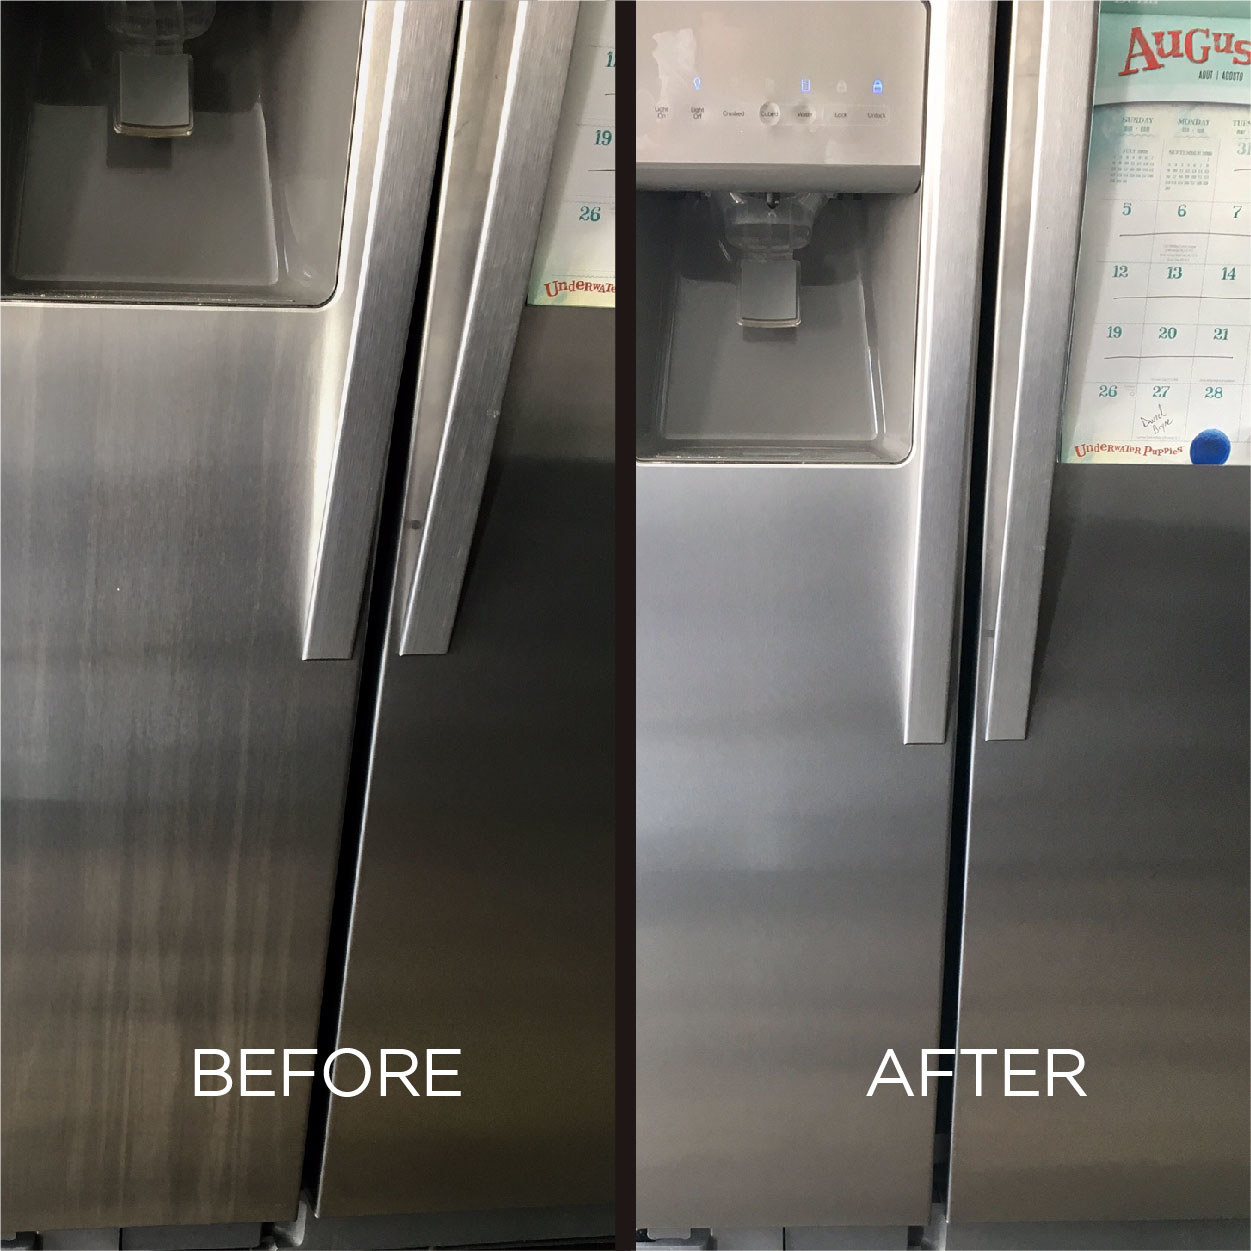 a fridge before using stainless steel cleaner and a fridge after using stainless steel cleaner